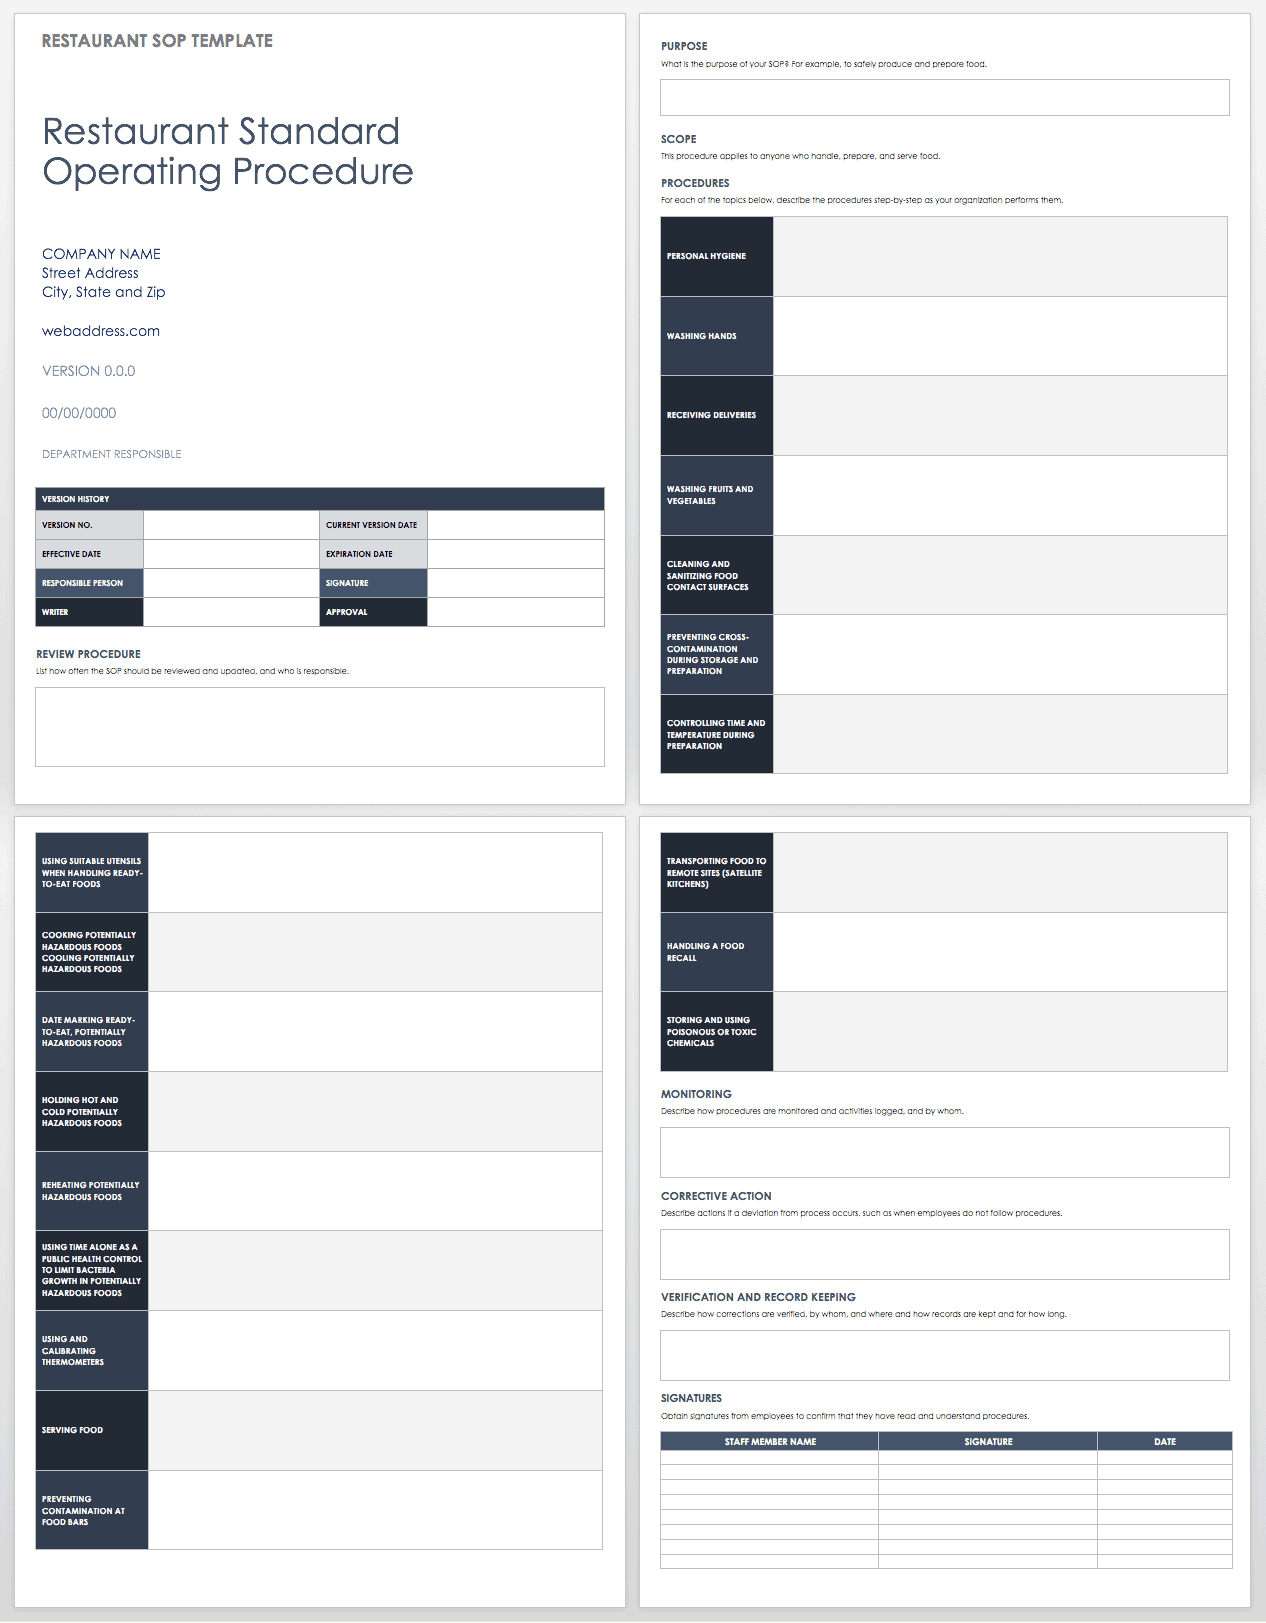 Standard Operating Procedures Templates | Smartsheet